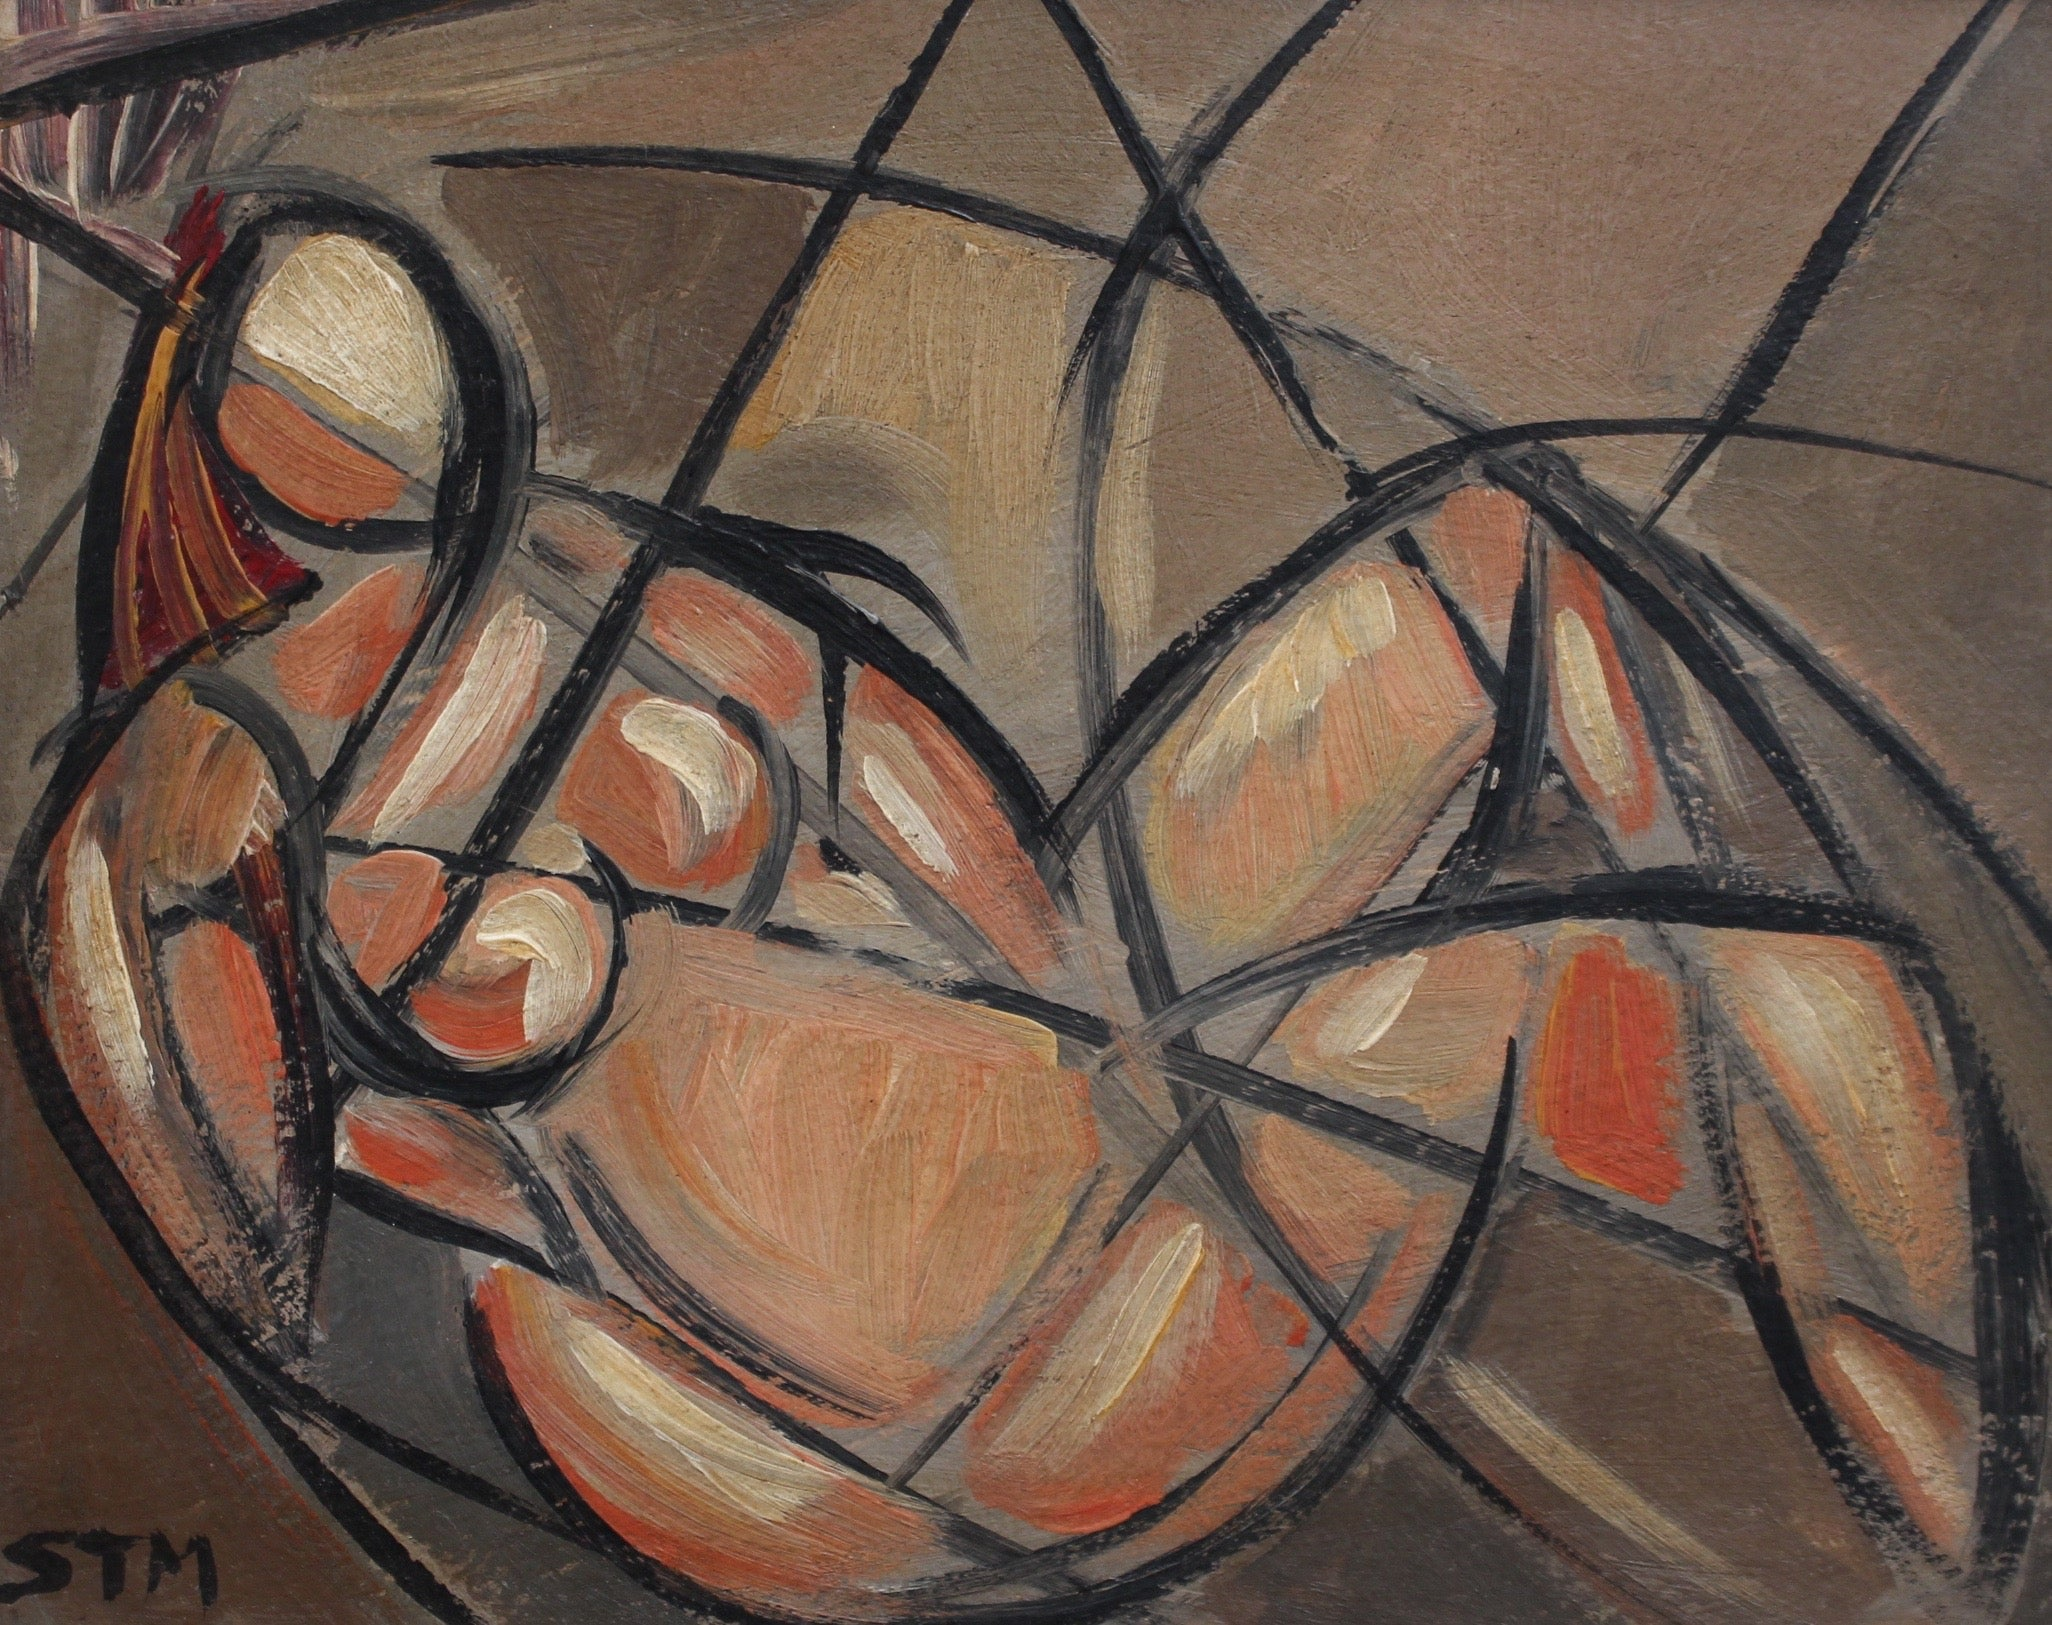 'Portrait of Reclining Woman' by STM (circa 1940s - 1960s)